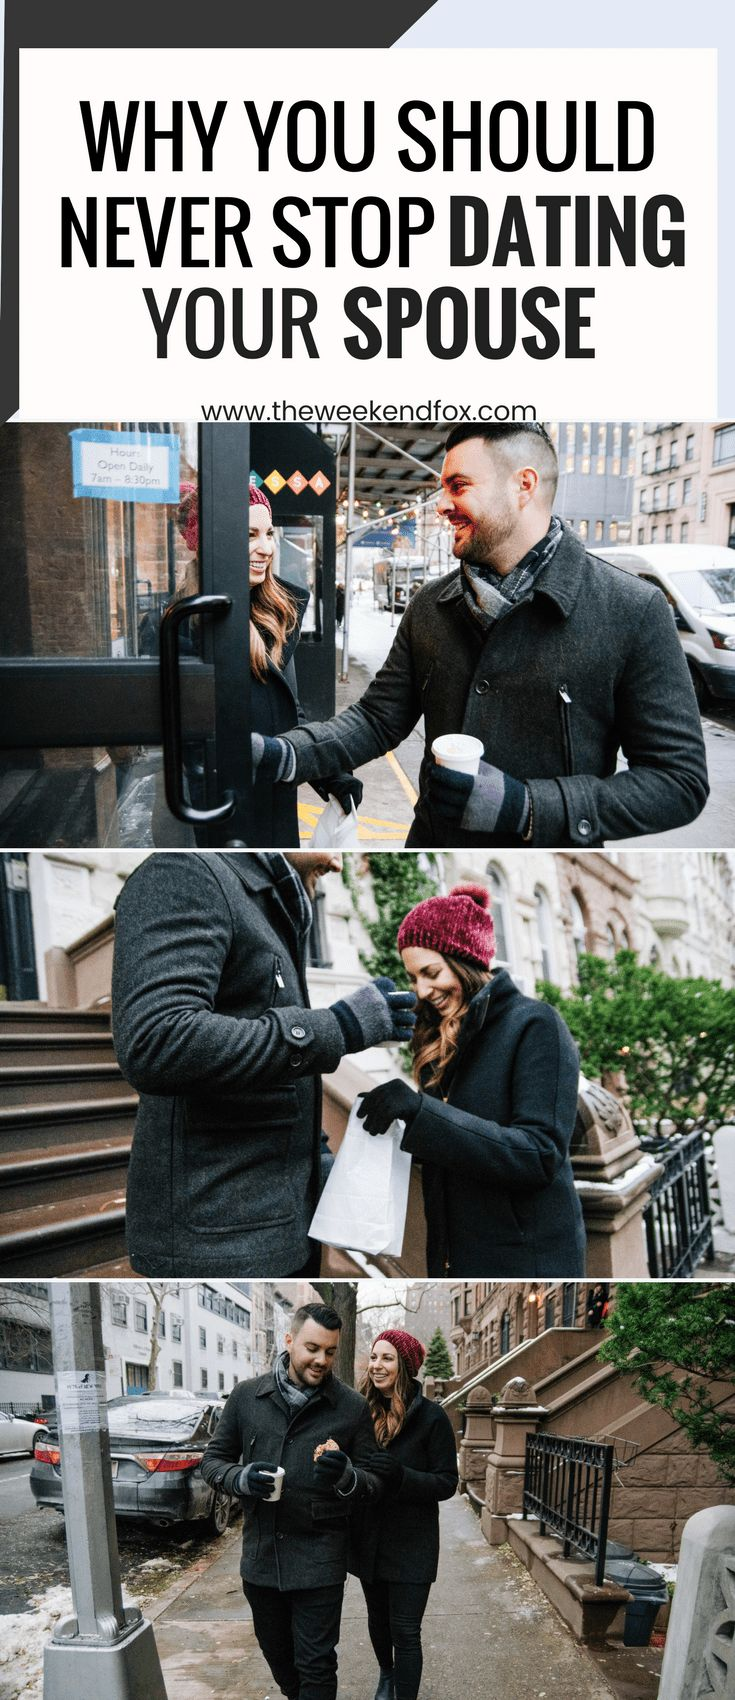 Date Your Spouse, Keep Dating, Relationship Goals, Marriage Advice, Relationship Tips, Date Ideas, How to keep dating, Benefits of dating, #MarriedLife #Relationships #LoveLife #MarriageGoals